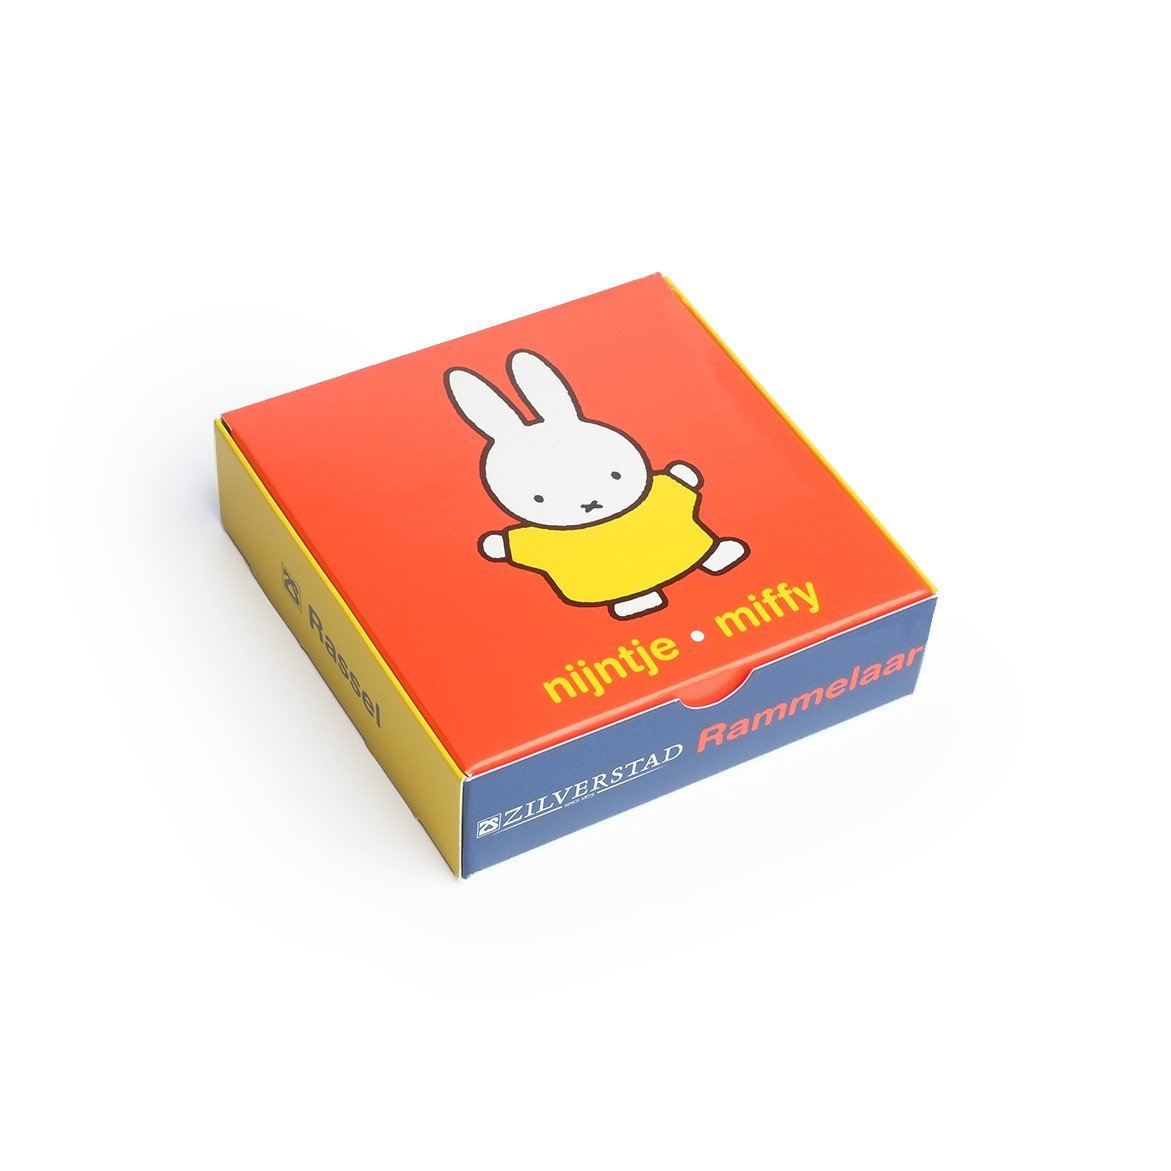 Rattle - Miffy Zilverstad - Miffy Club | Etiquette Clothiers Global Official